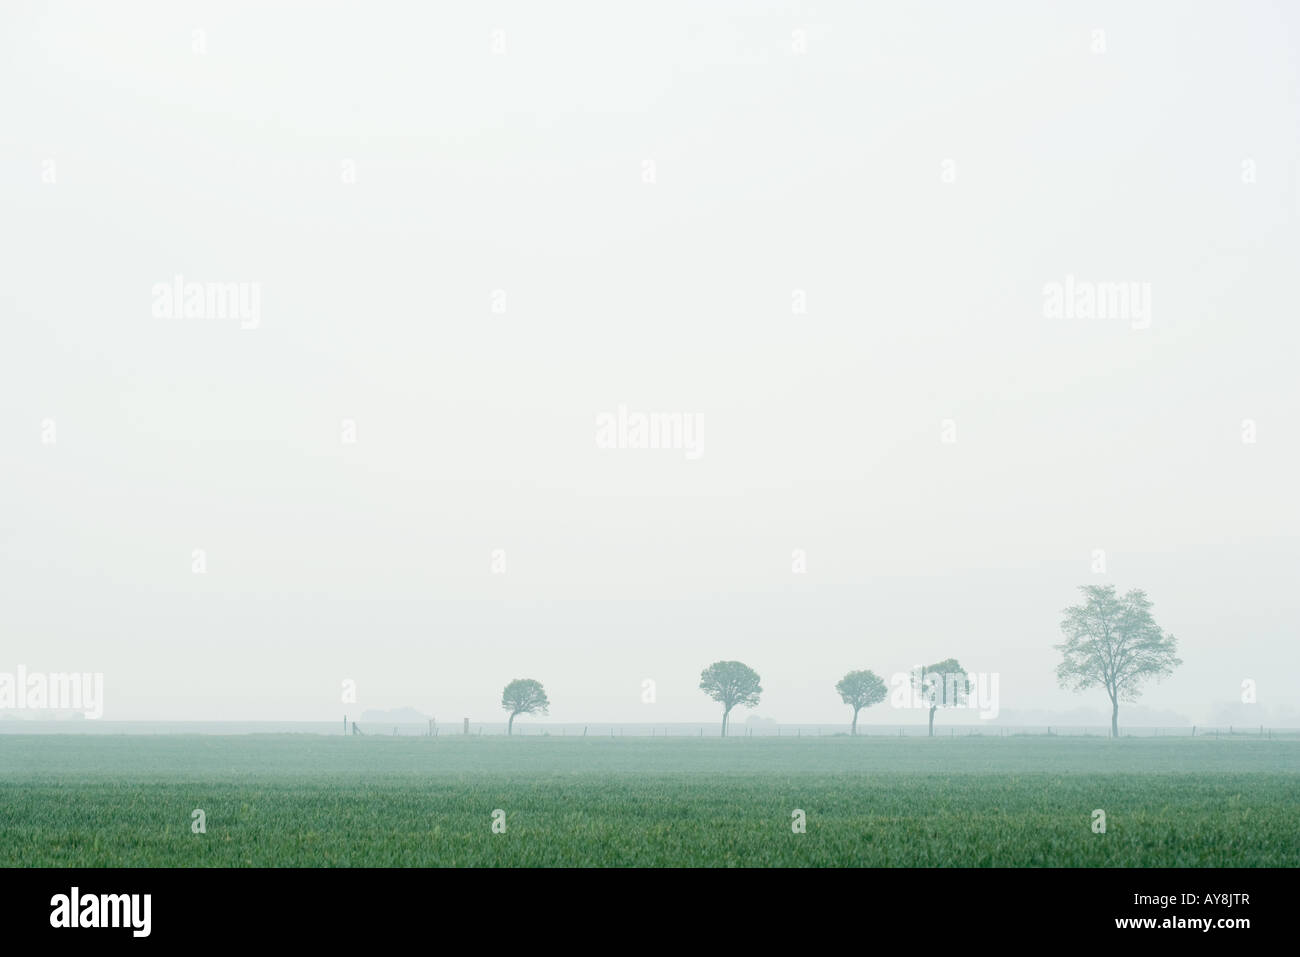 Line of trees in foggy landscape - Stock Image